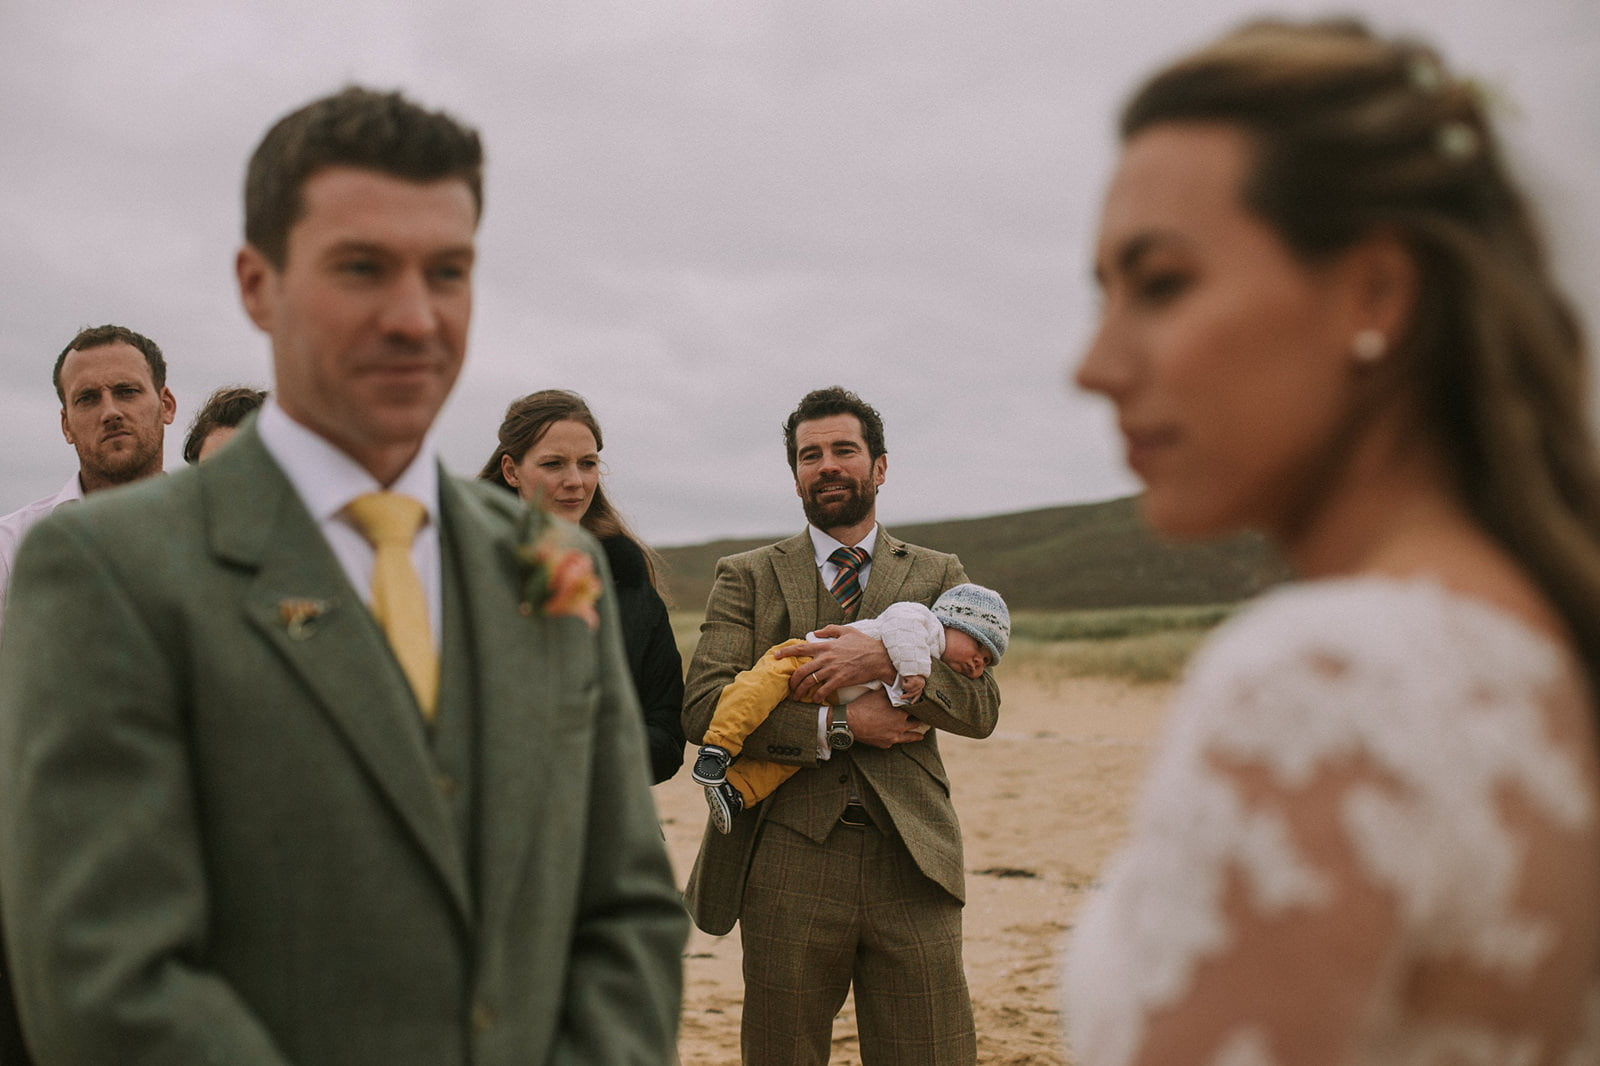 natural documentary wedding photography harris